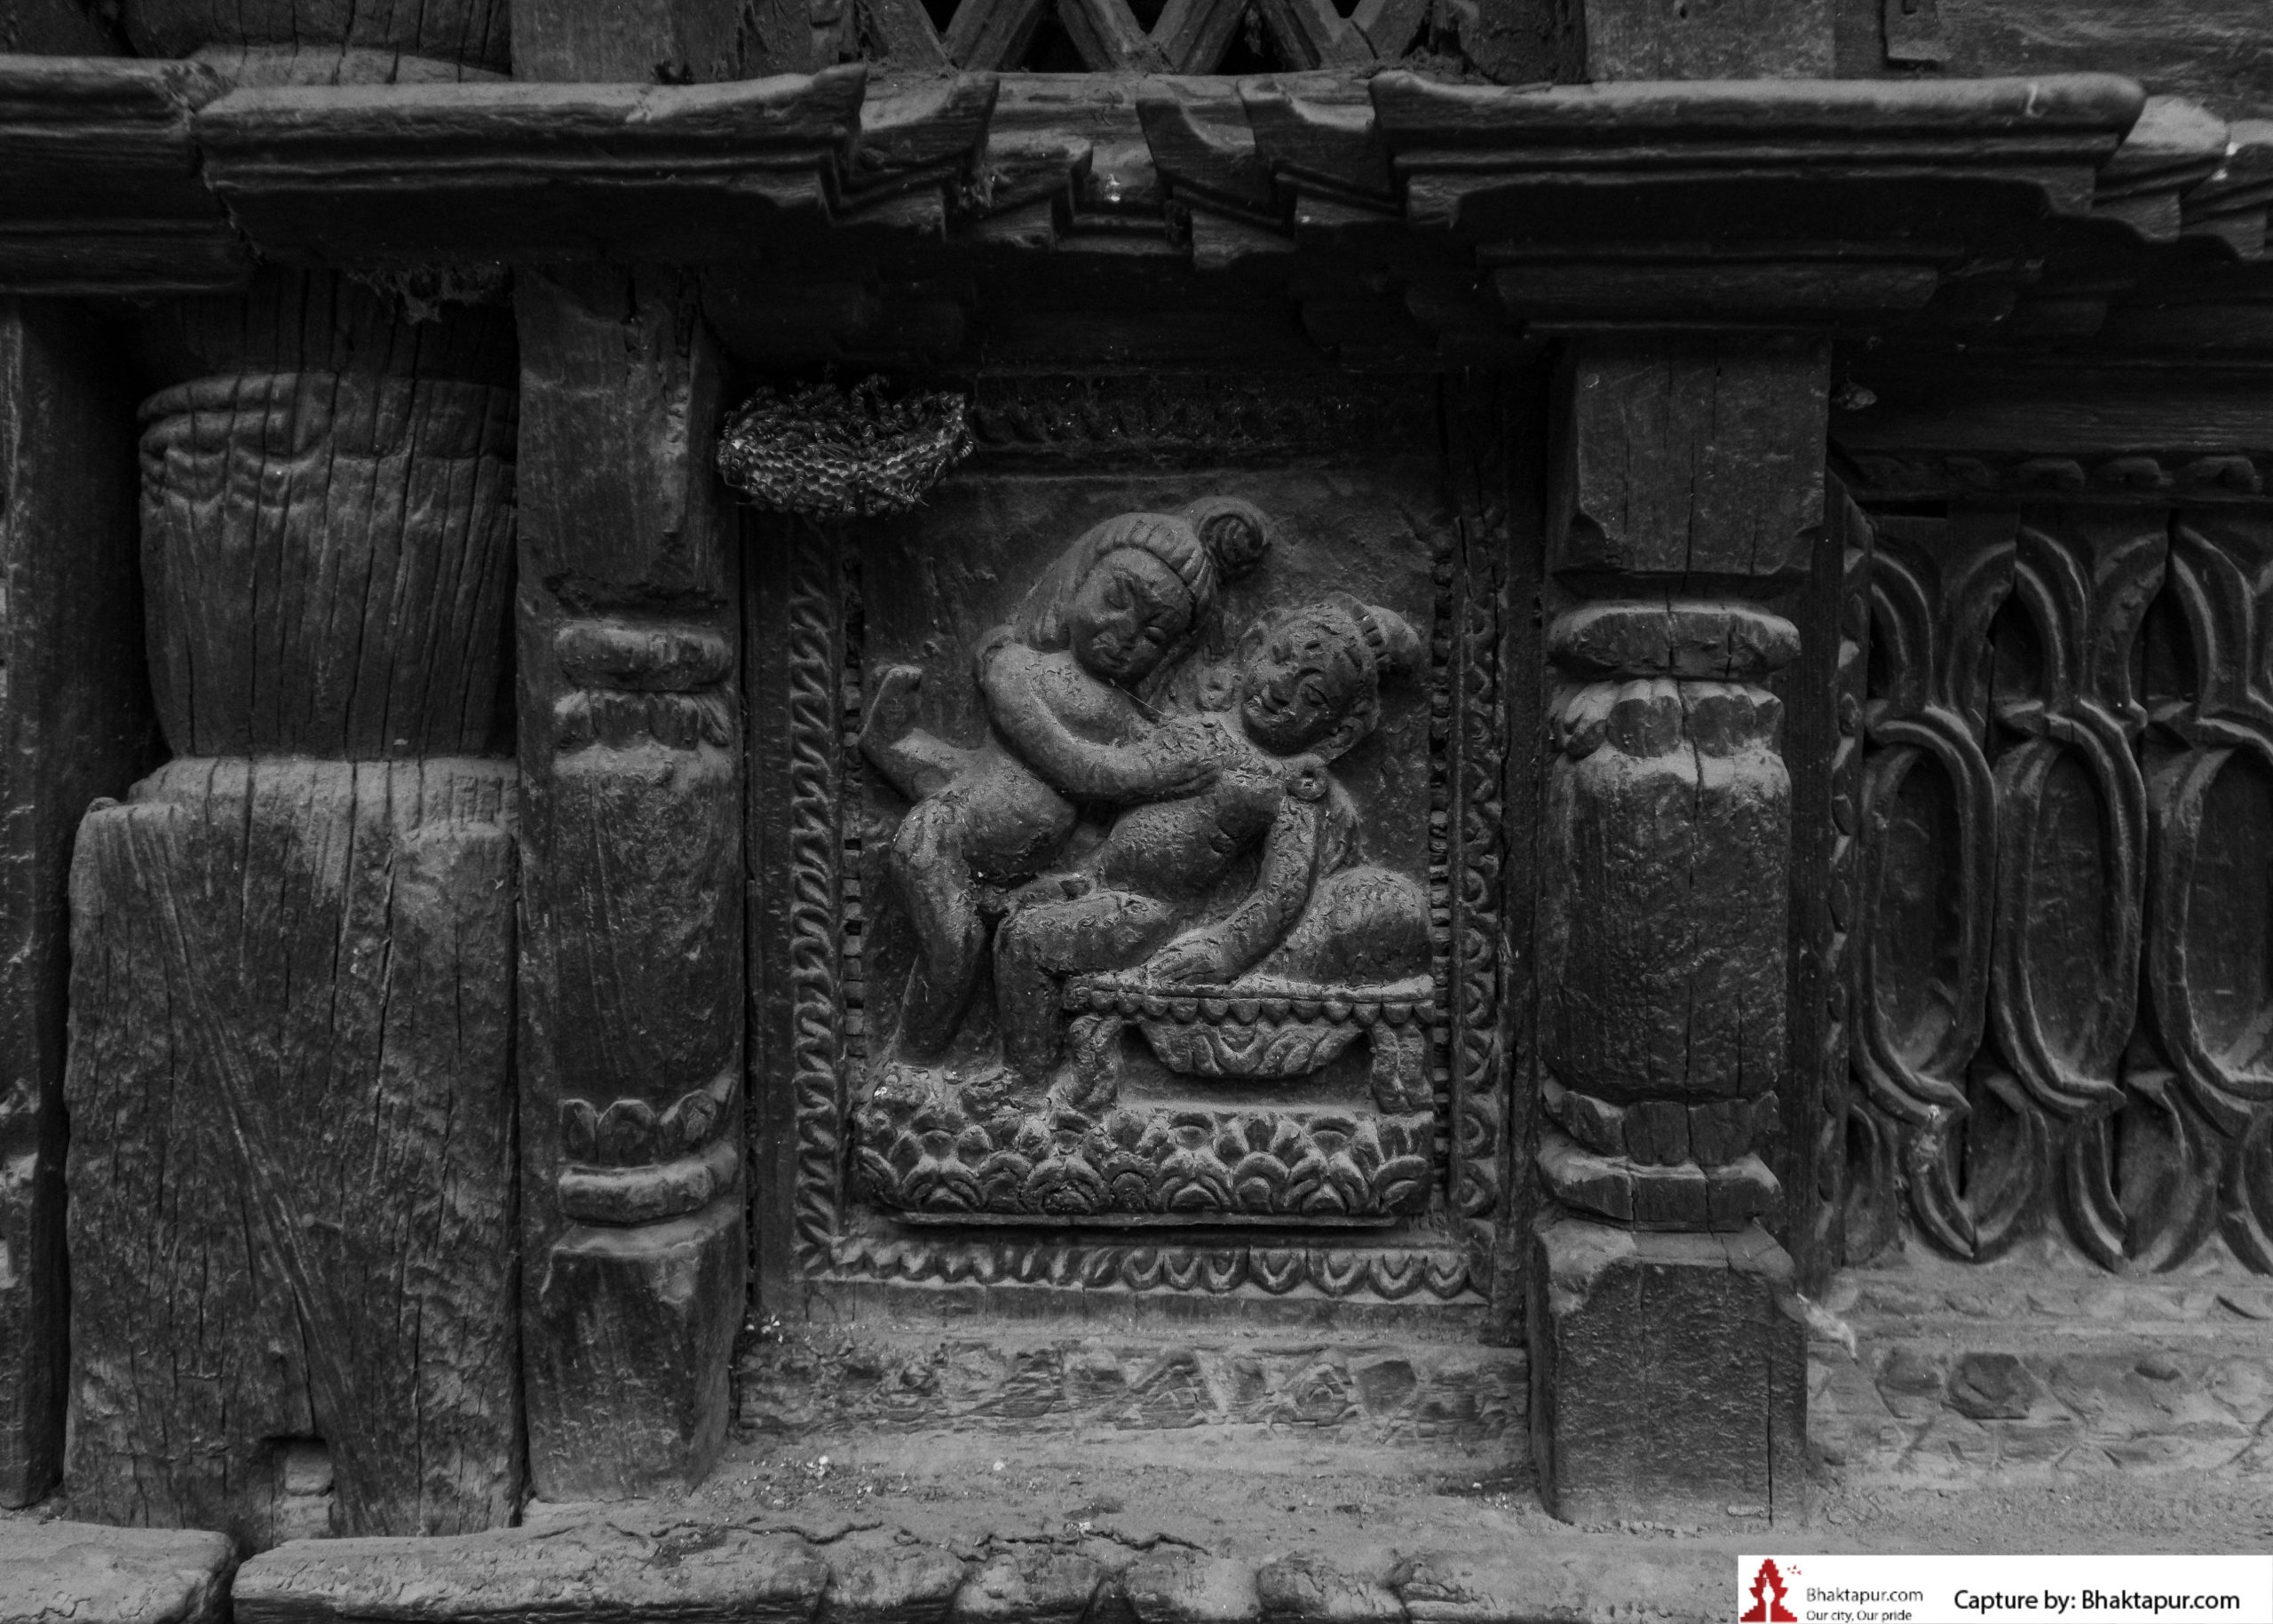 https://www.bhaktapur.com/wp-content/uploads/2021/08/erotic-carving-7-of-137-scaled.jpg